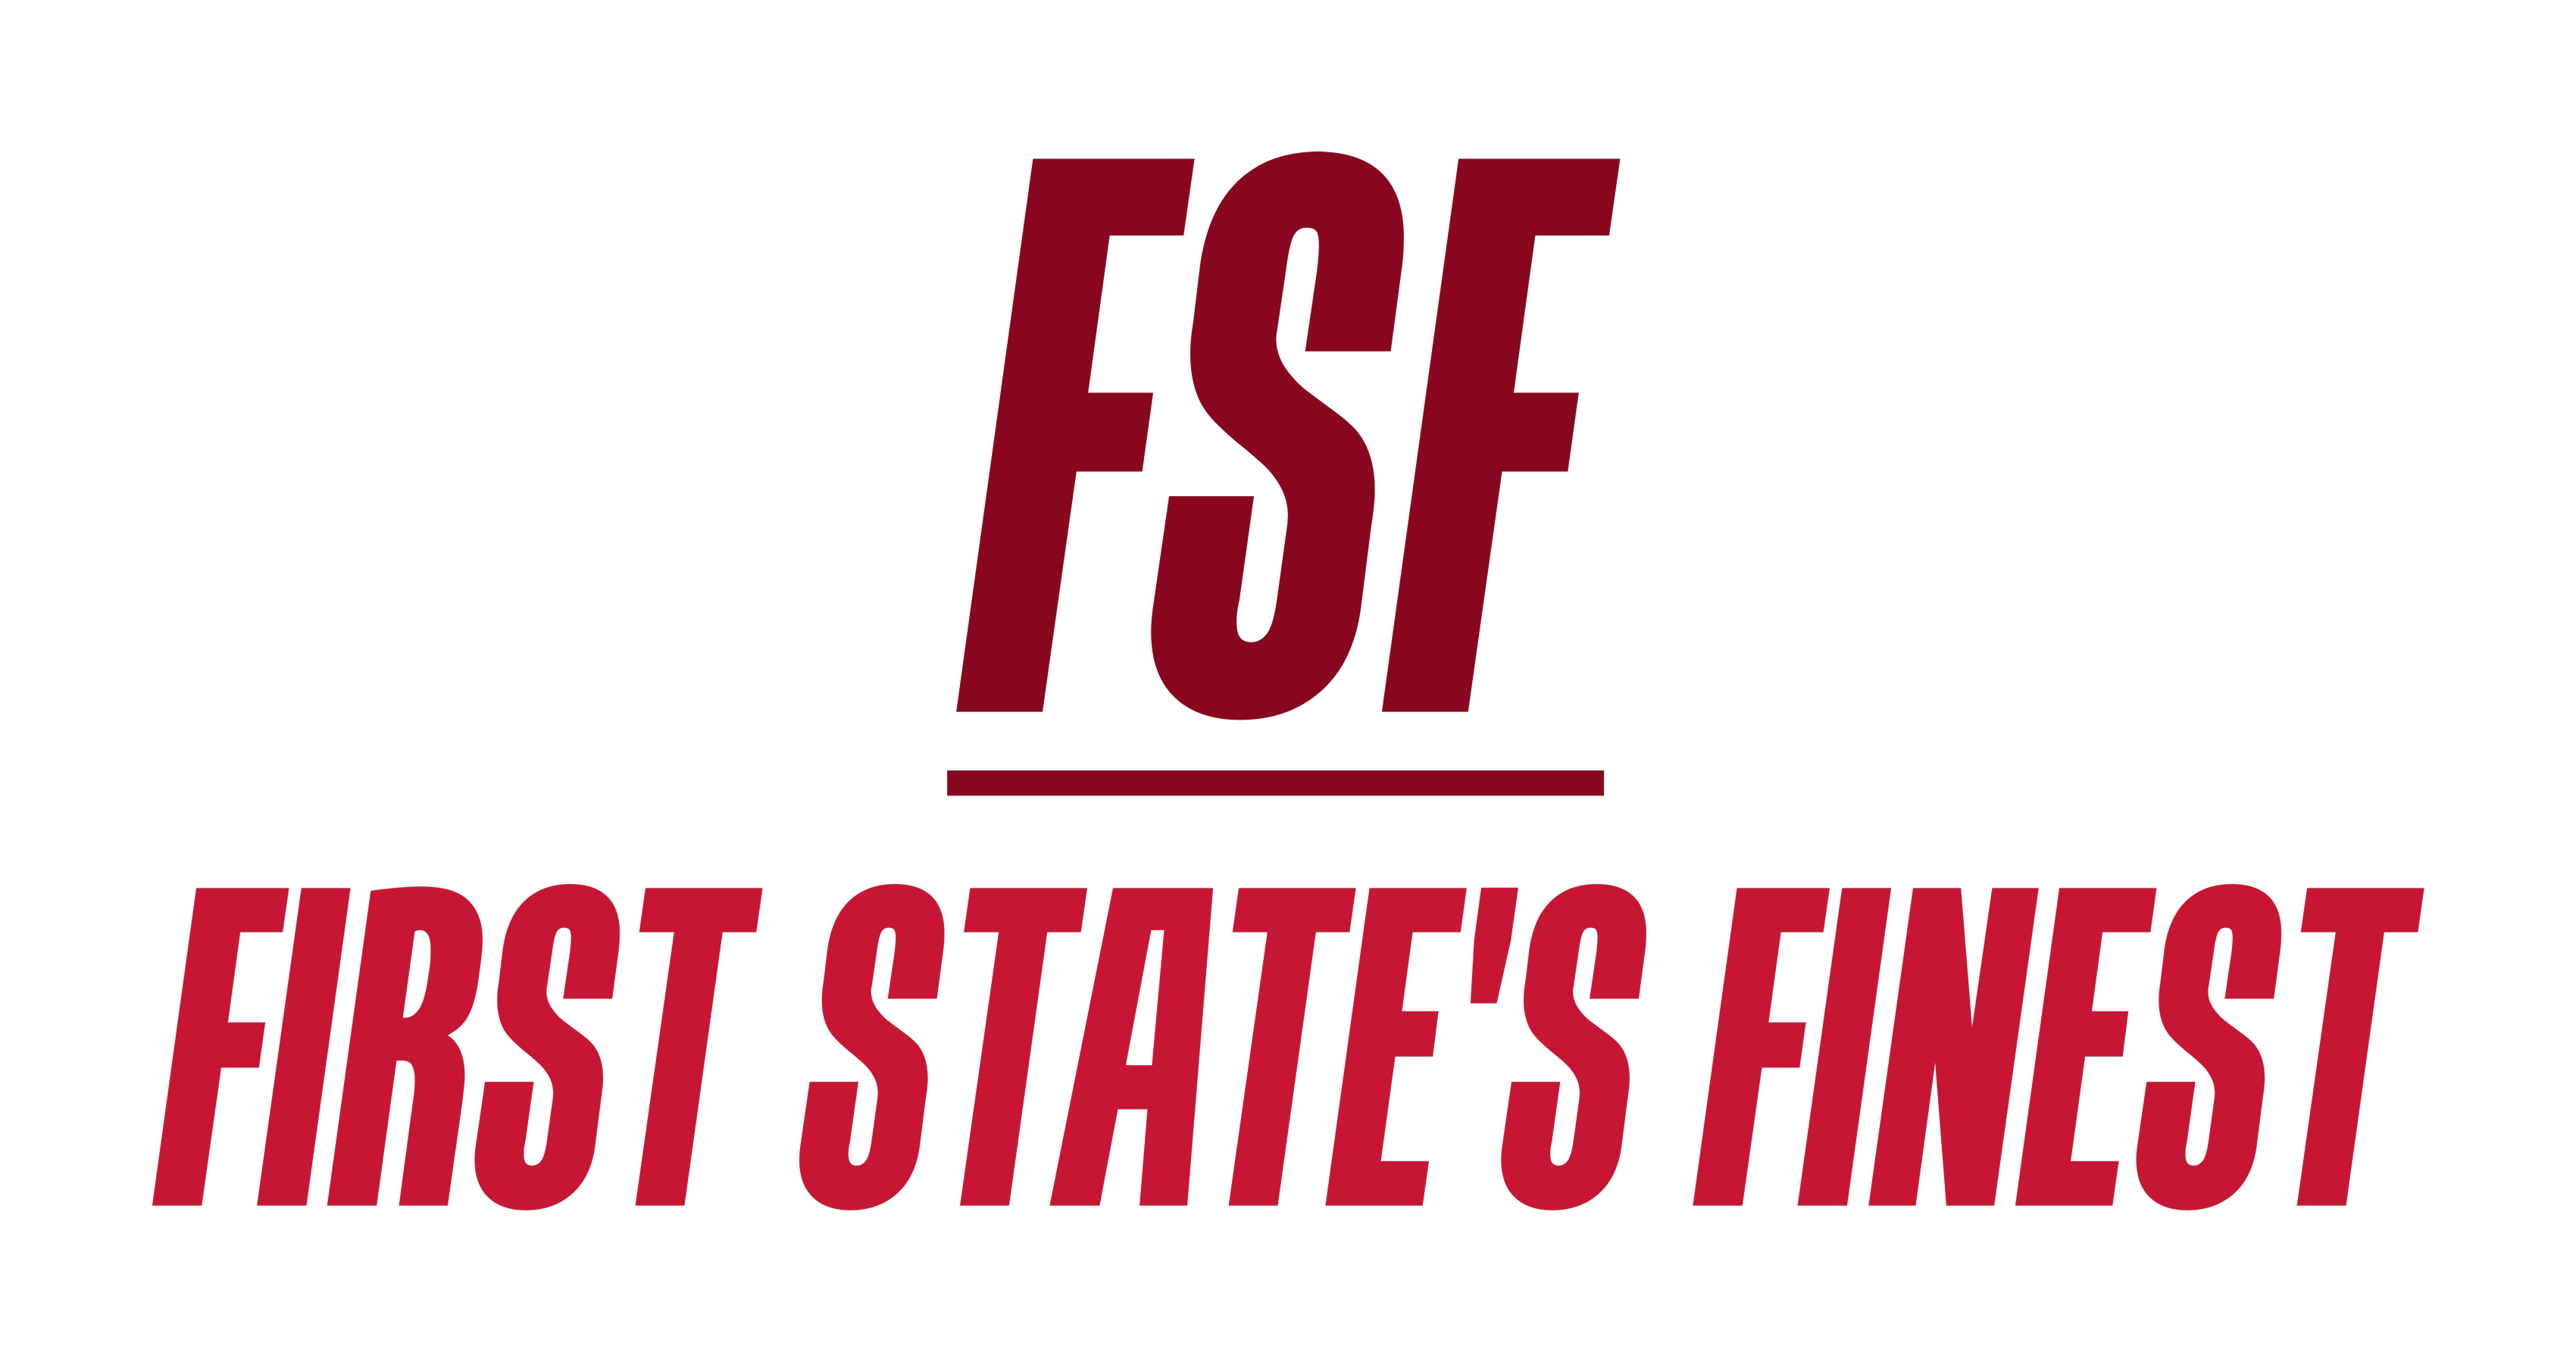 First State's Finest Logo